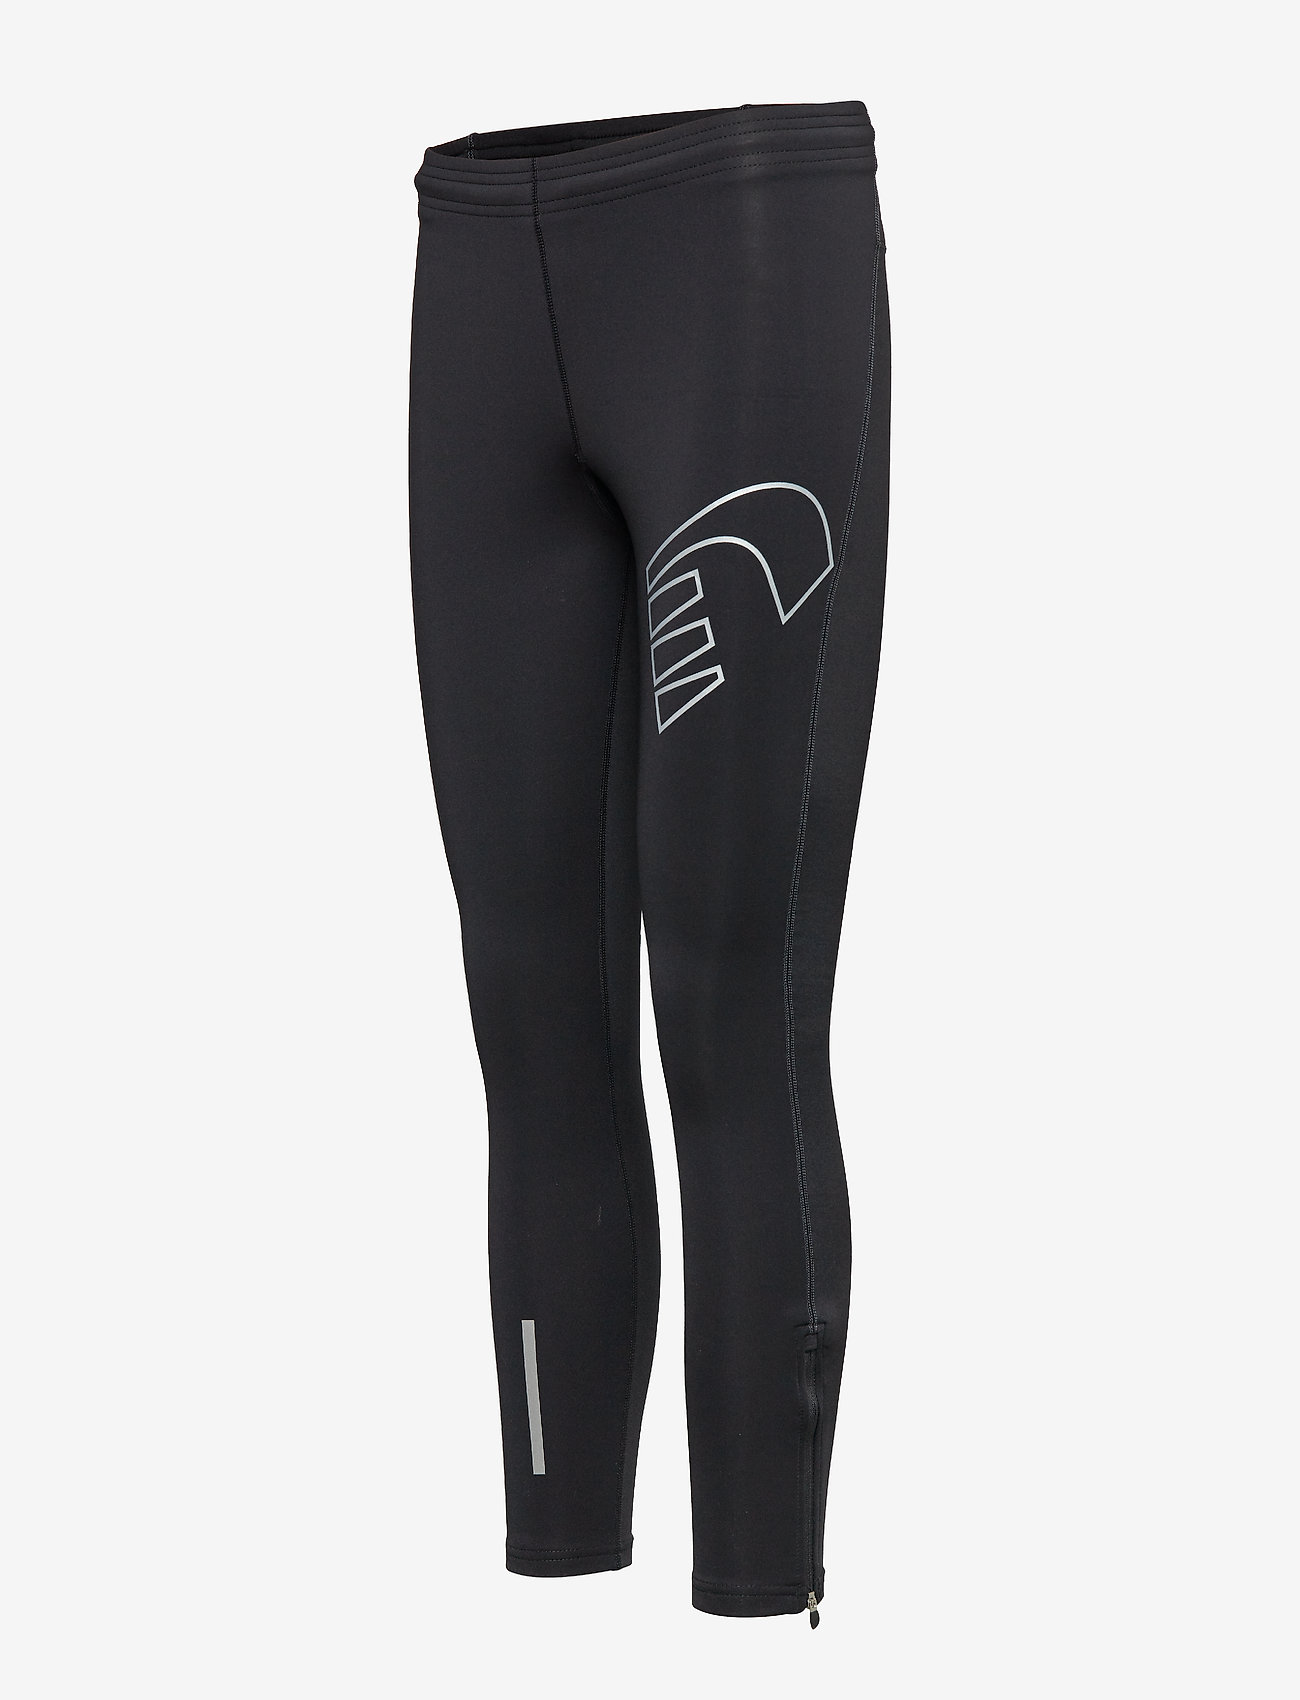 Core Warm Protect Tights (Black) (70 €) - Newline Hoa9M